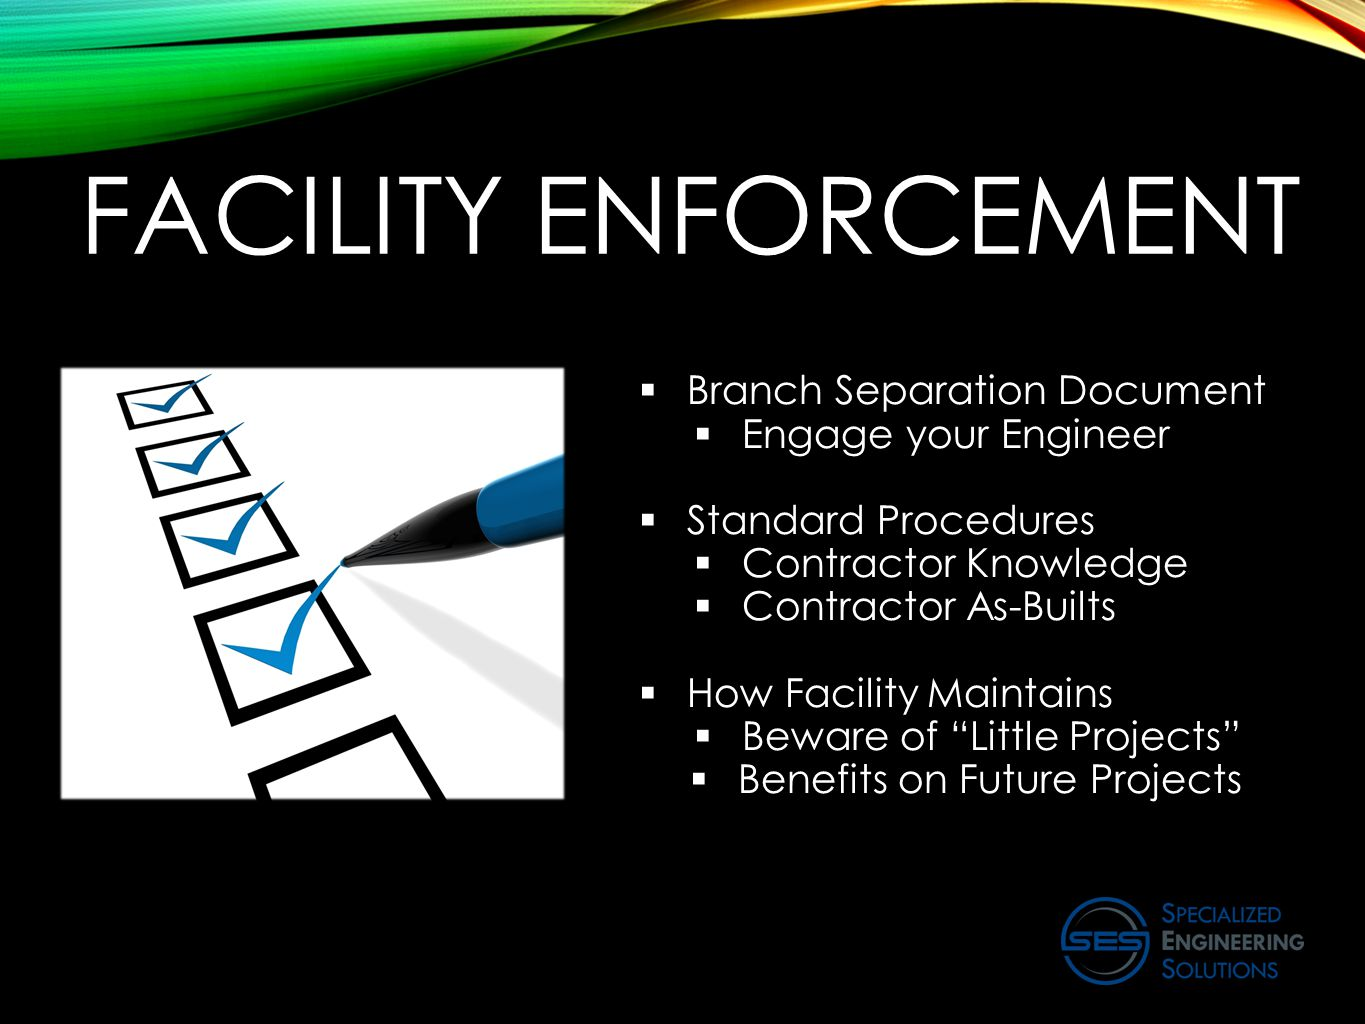 FACILITY ENFORCEMENT  Branch Separation Document  Engage your Engineer  Standard Procedures  Contractor Knowledge  Contractor As-Builts  How Facility Maintains  Beware of Little Projects  Benefits on Future Projects